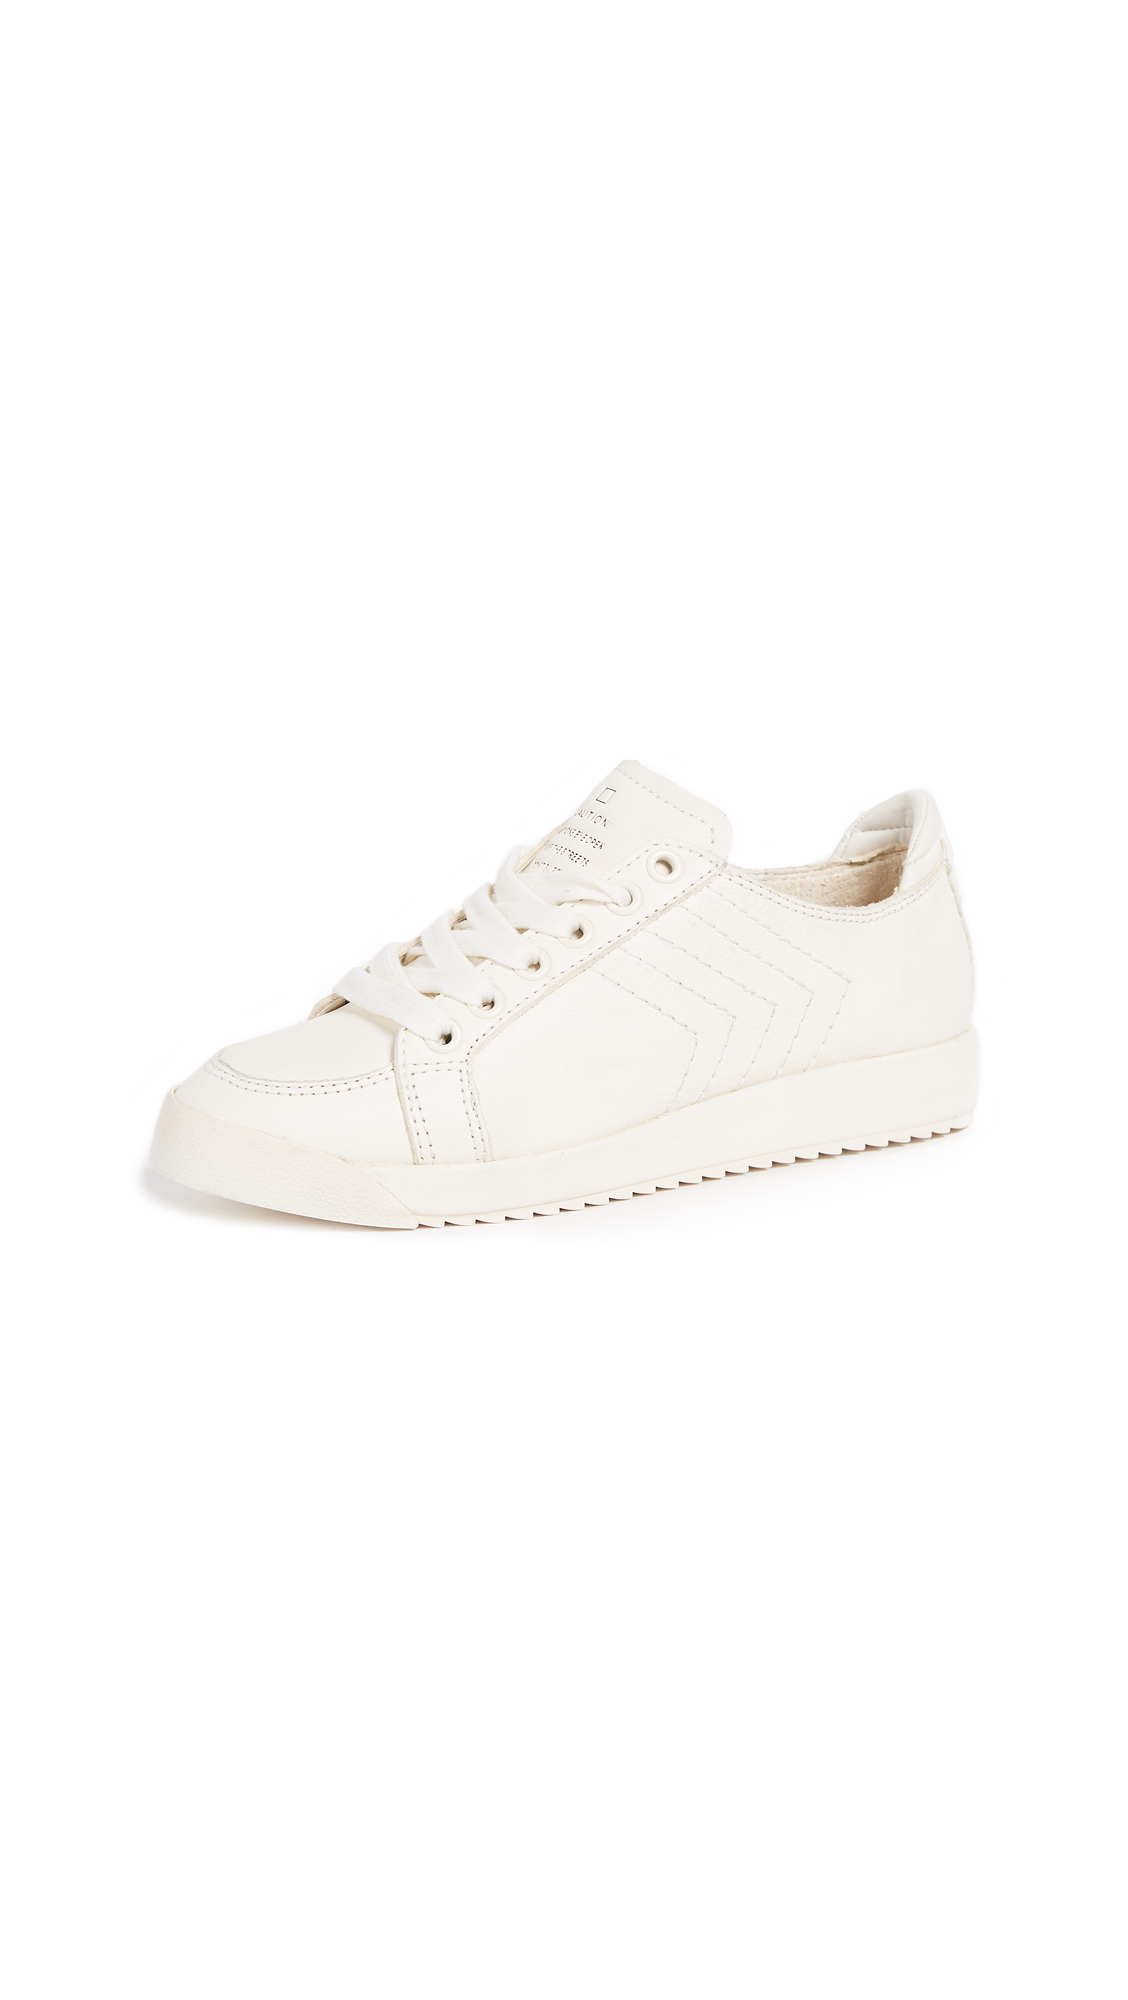 Dolce Vita Sage Lace Up Sneakers - Ivory